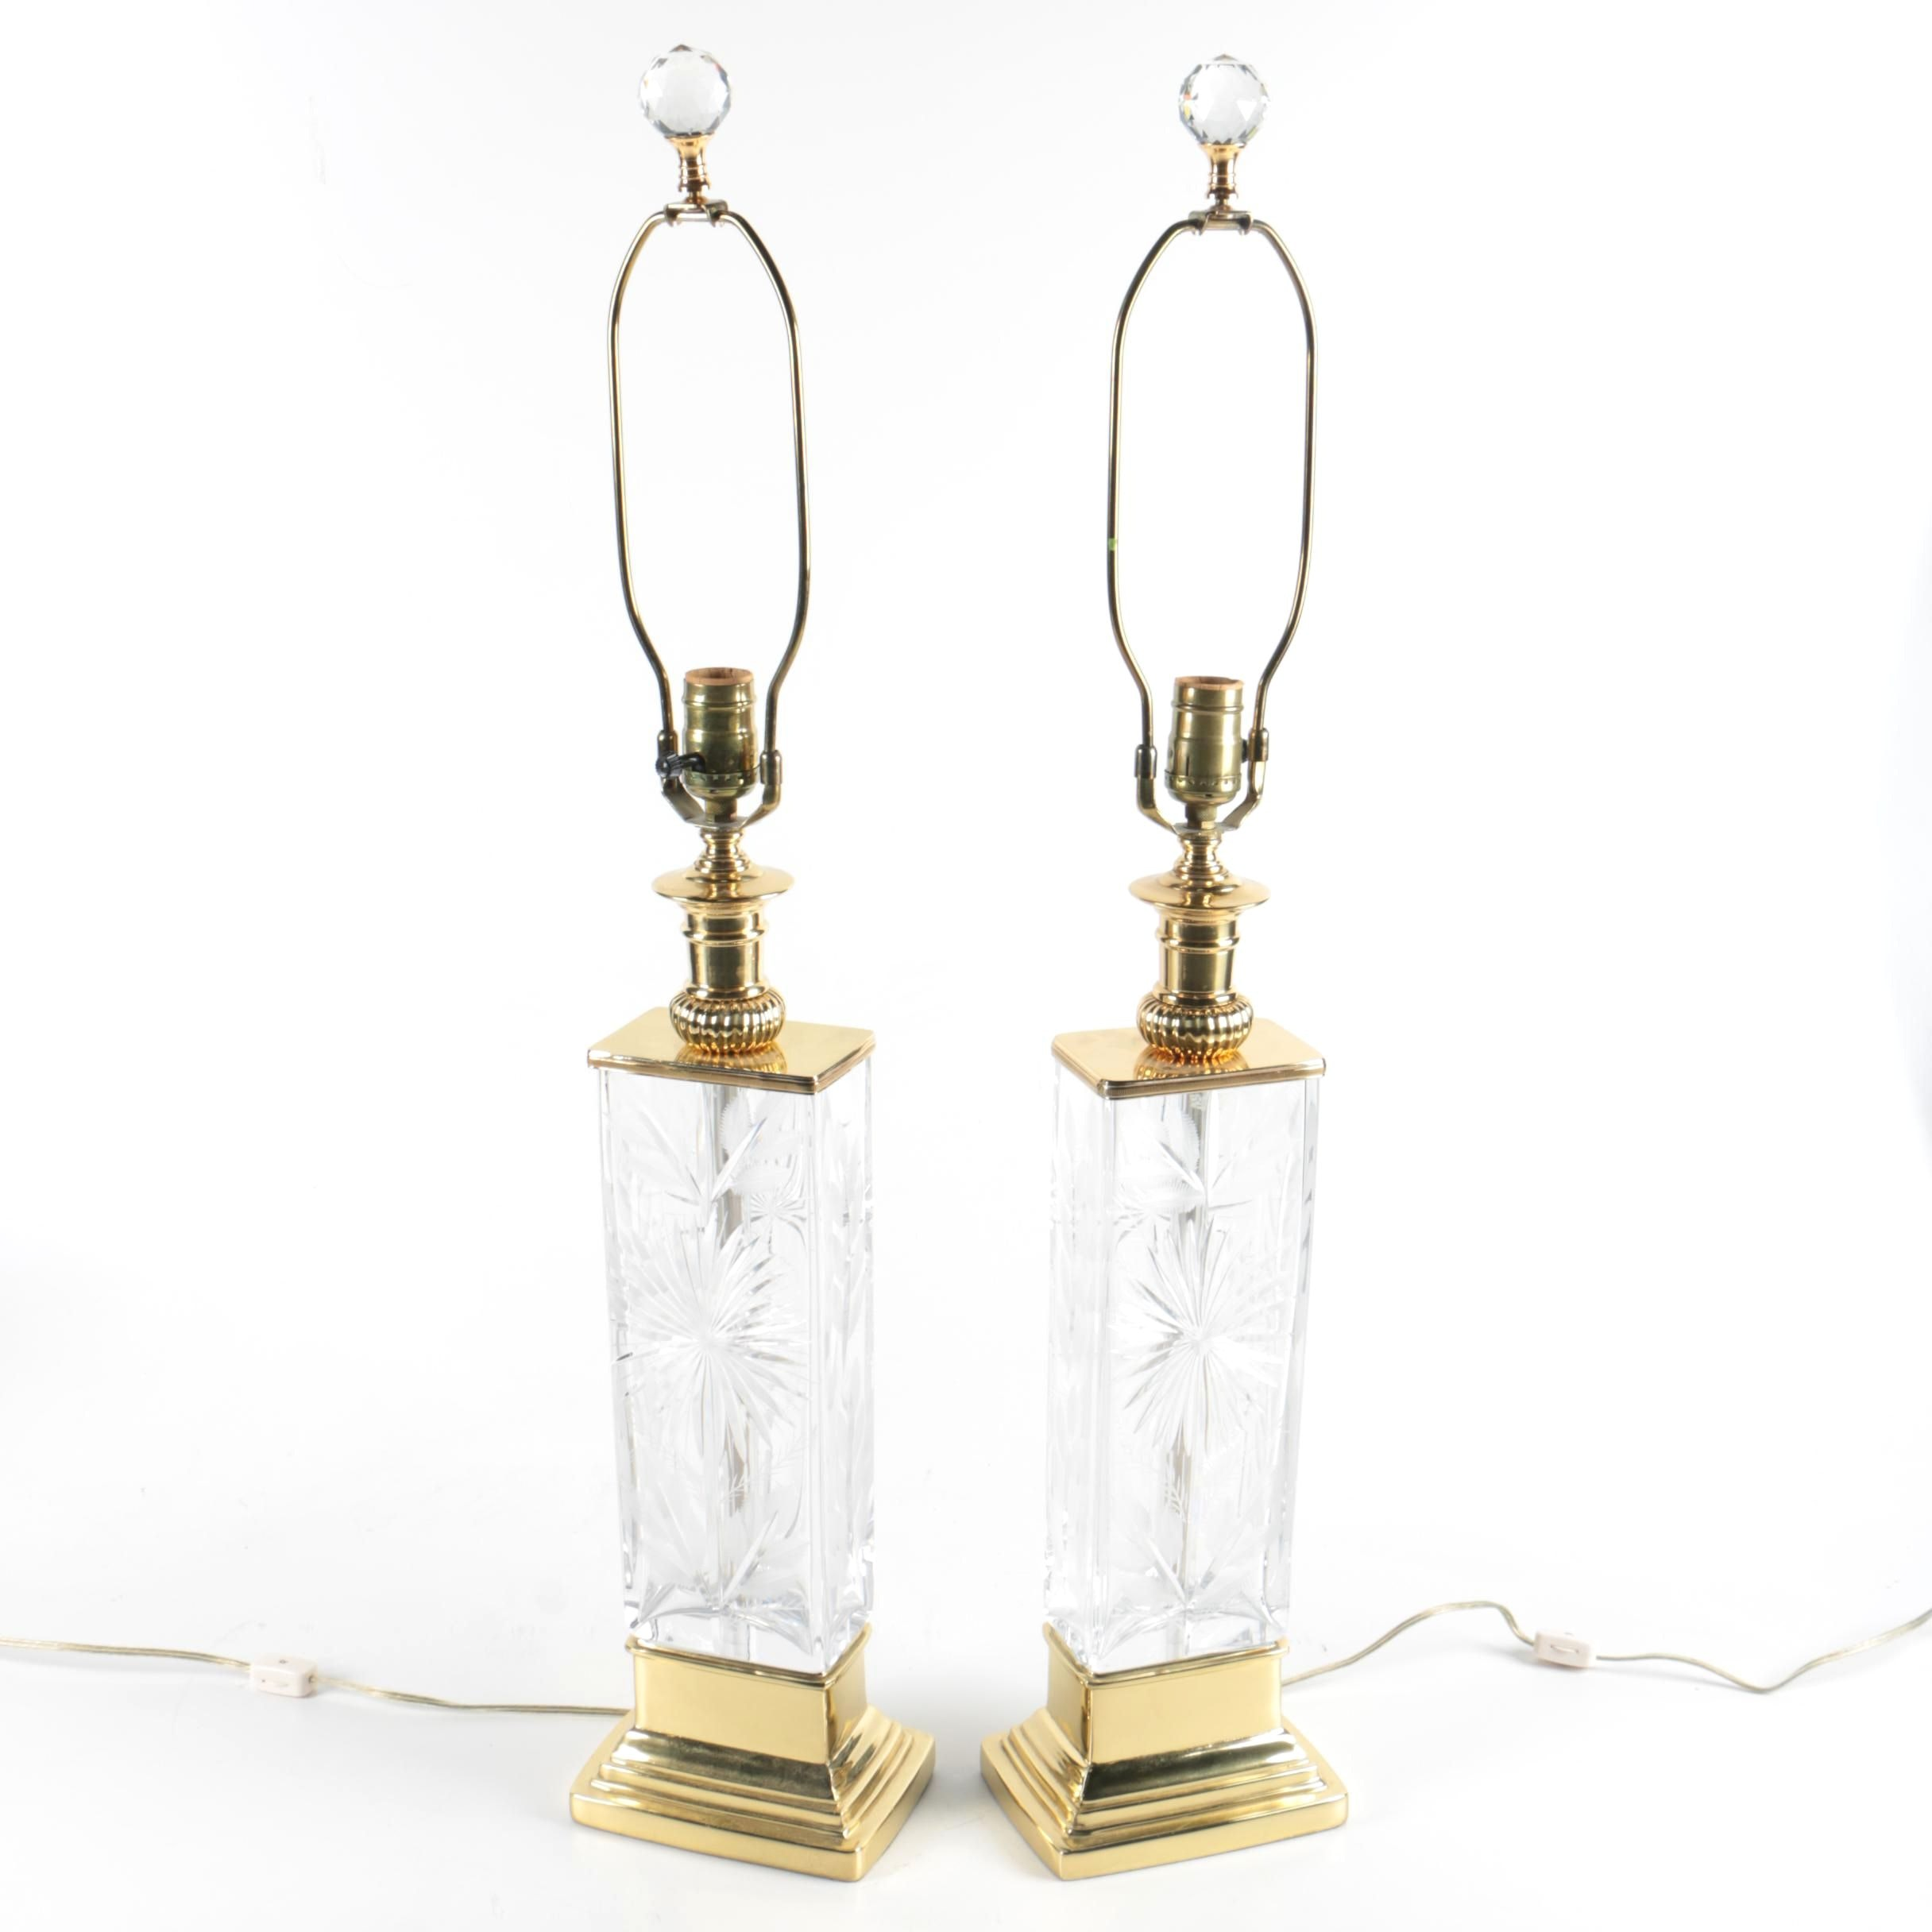 Pair of Etched and Frosted Patterned Glass Table Lamps